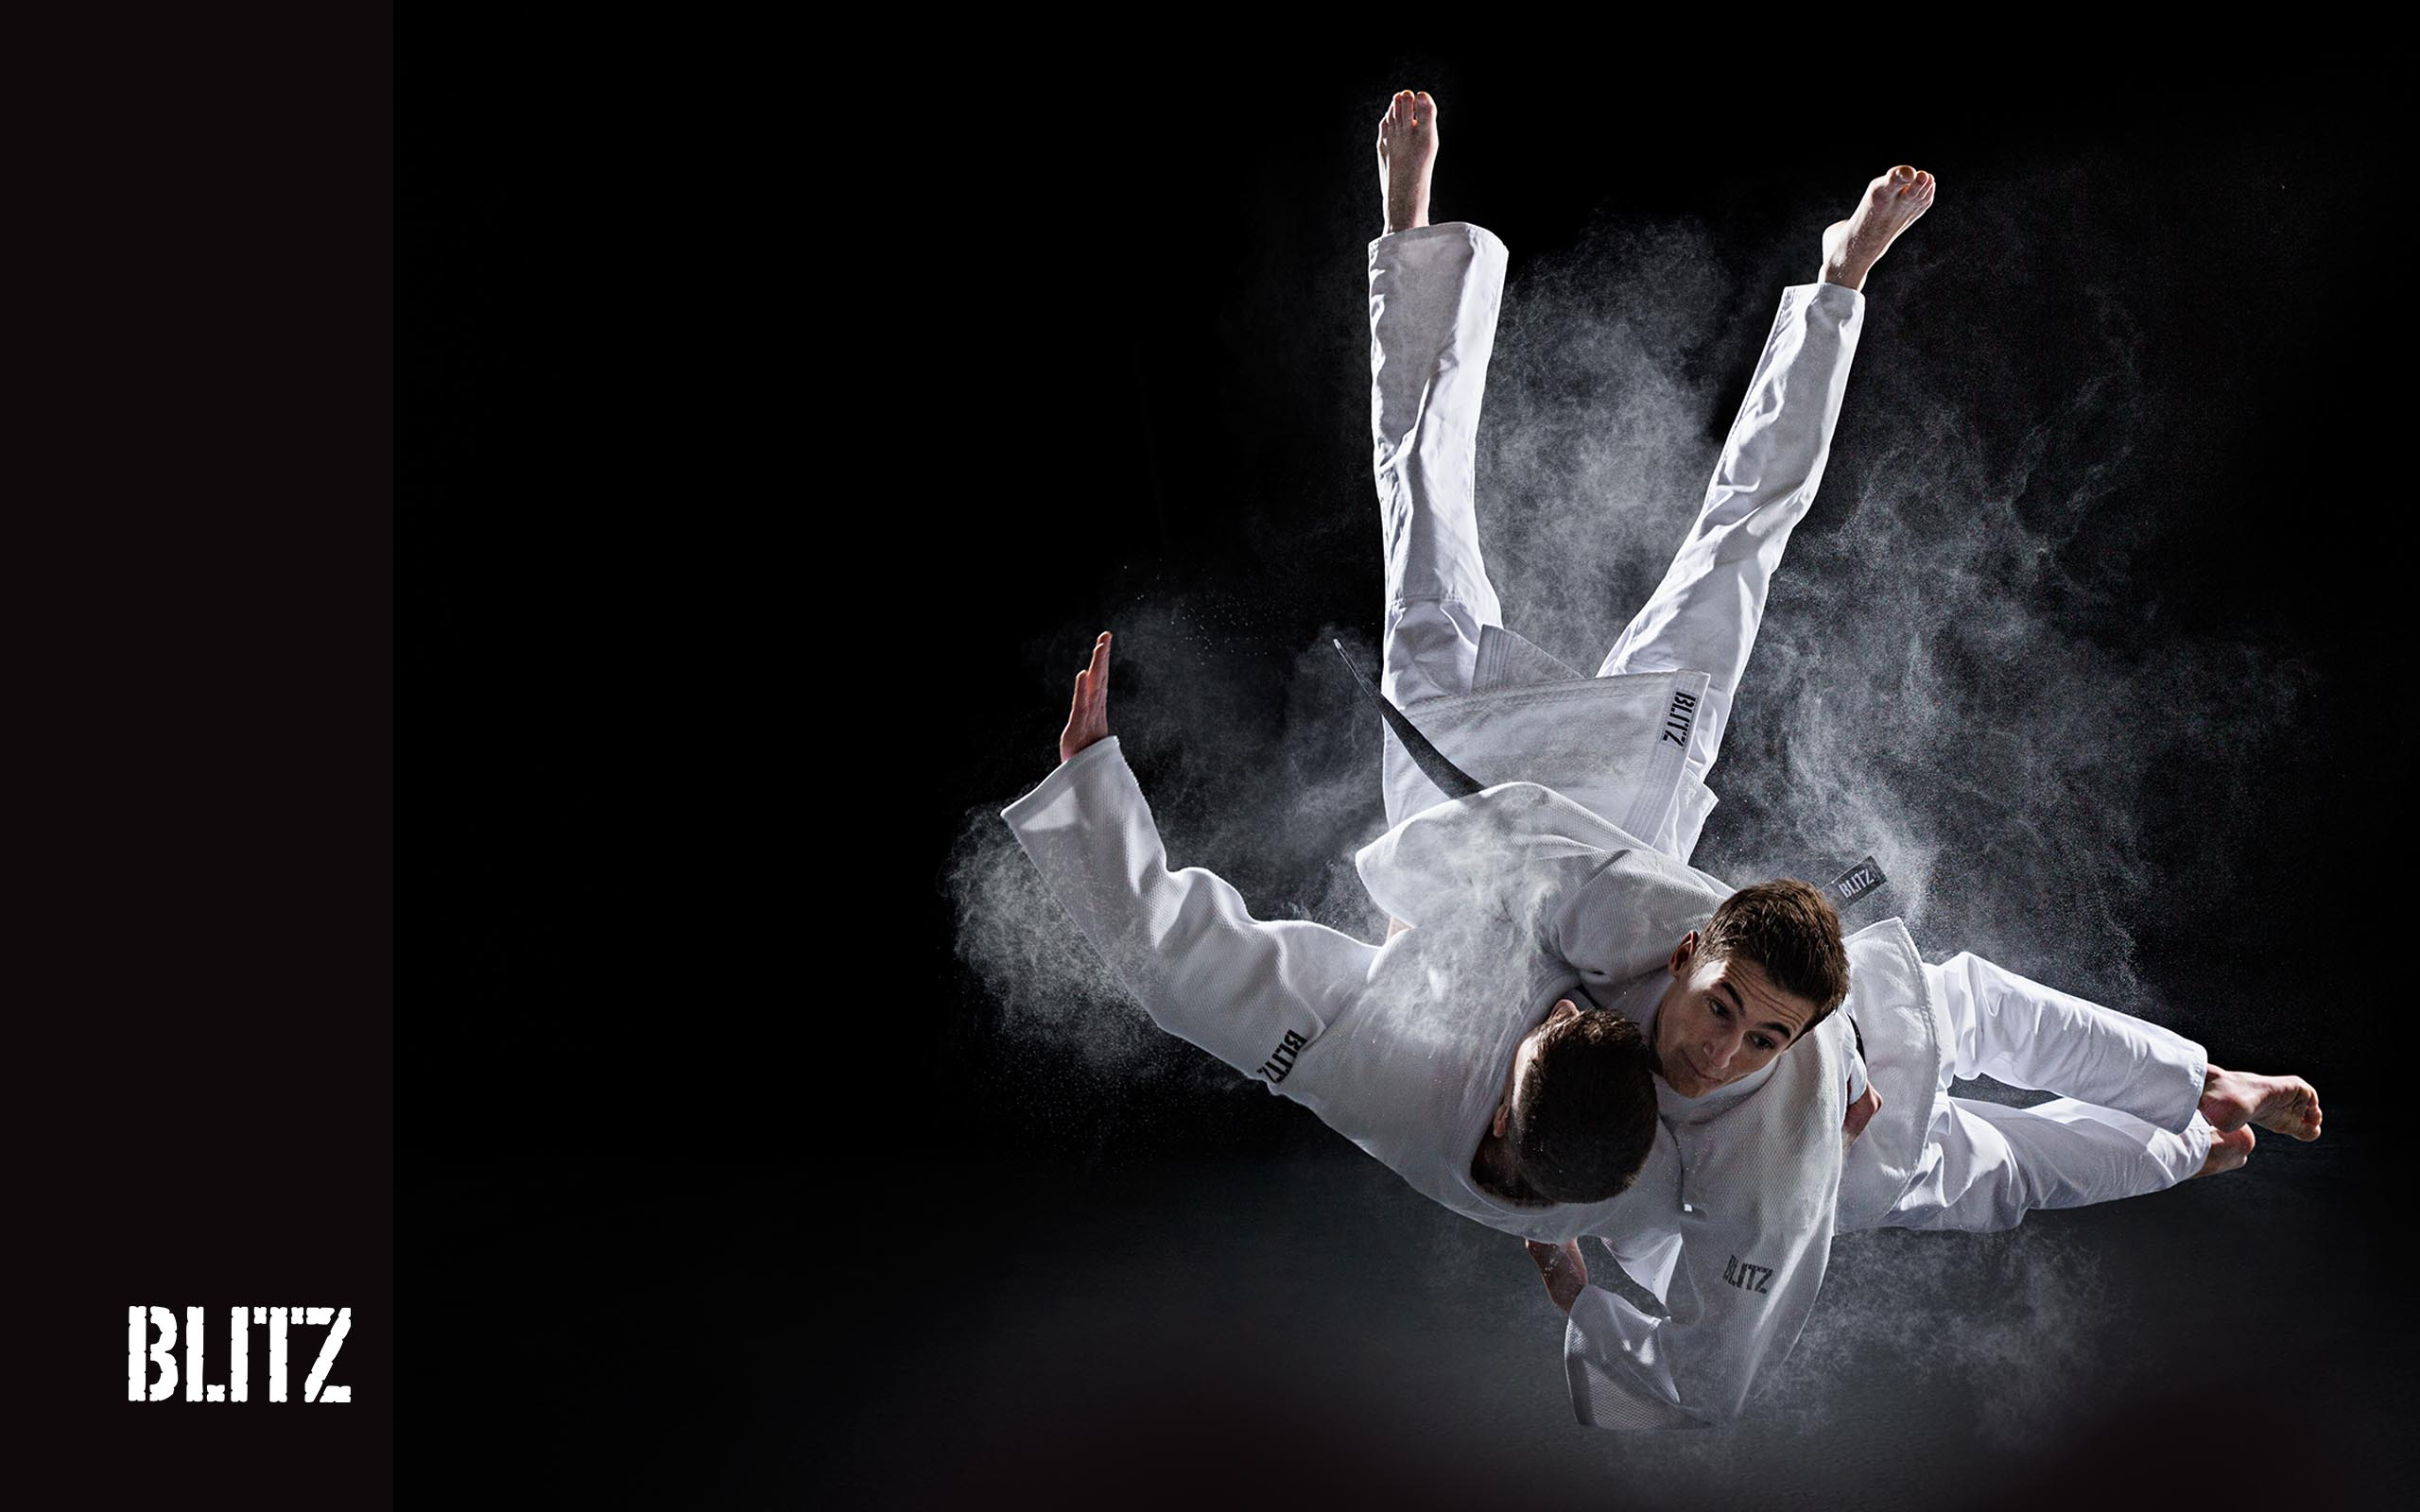 judo wallpaper   wallpapersafari